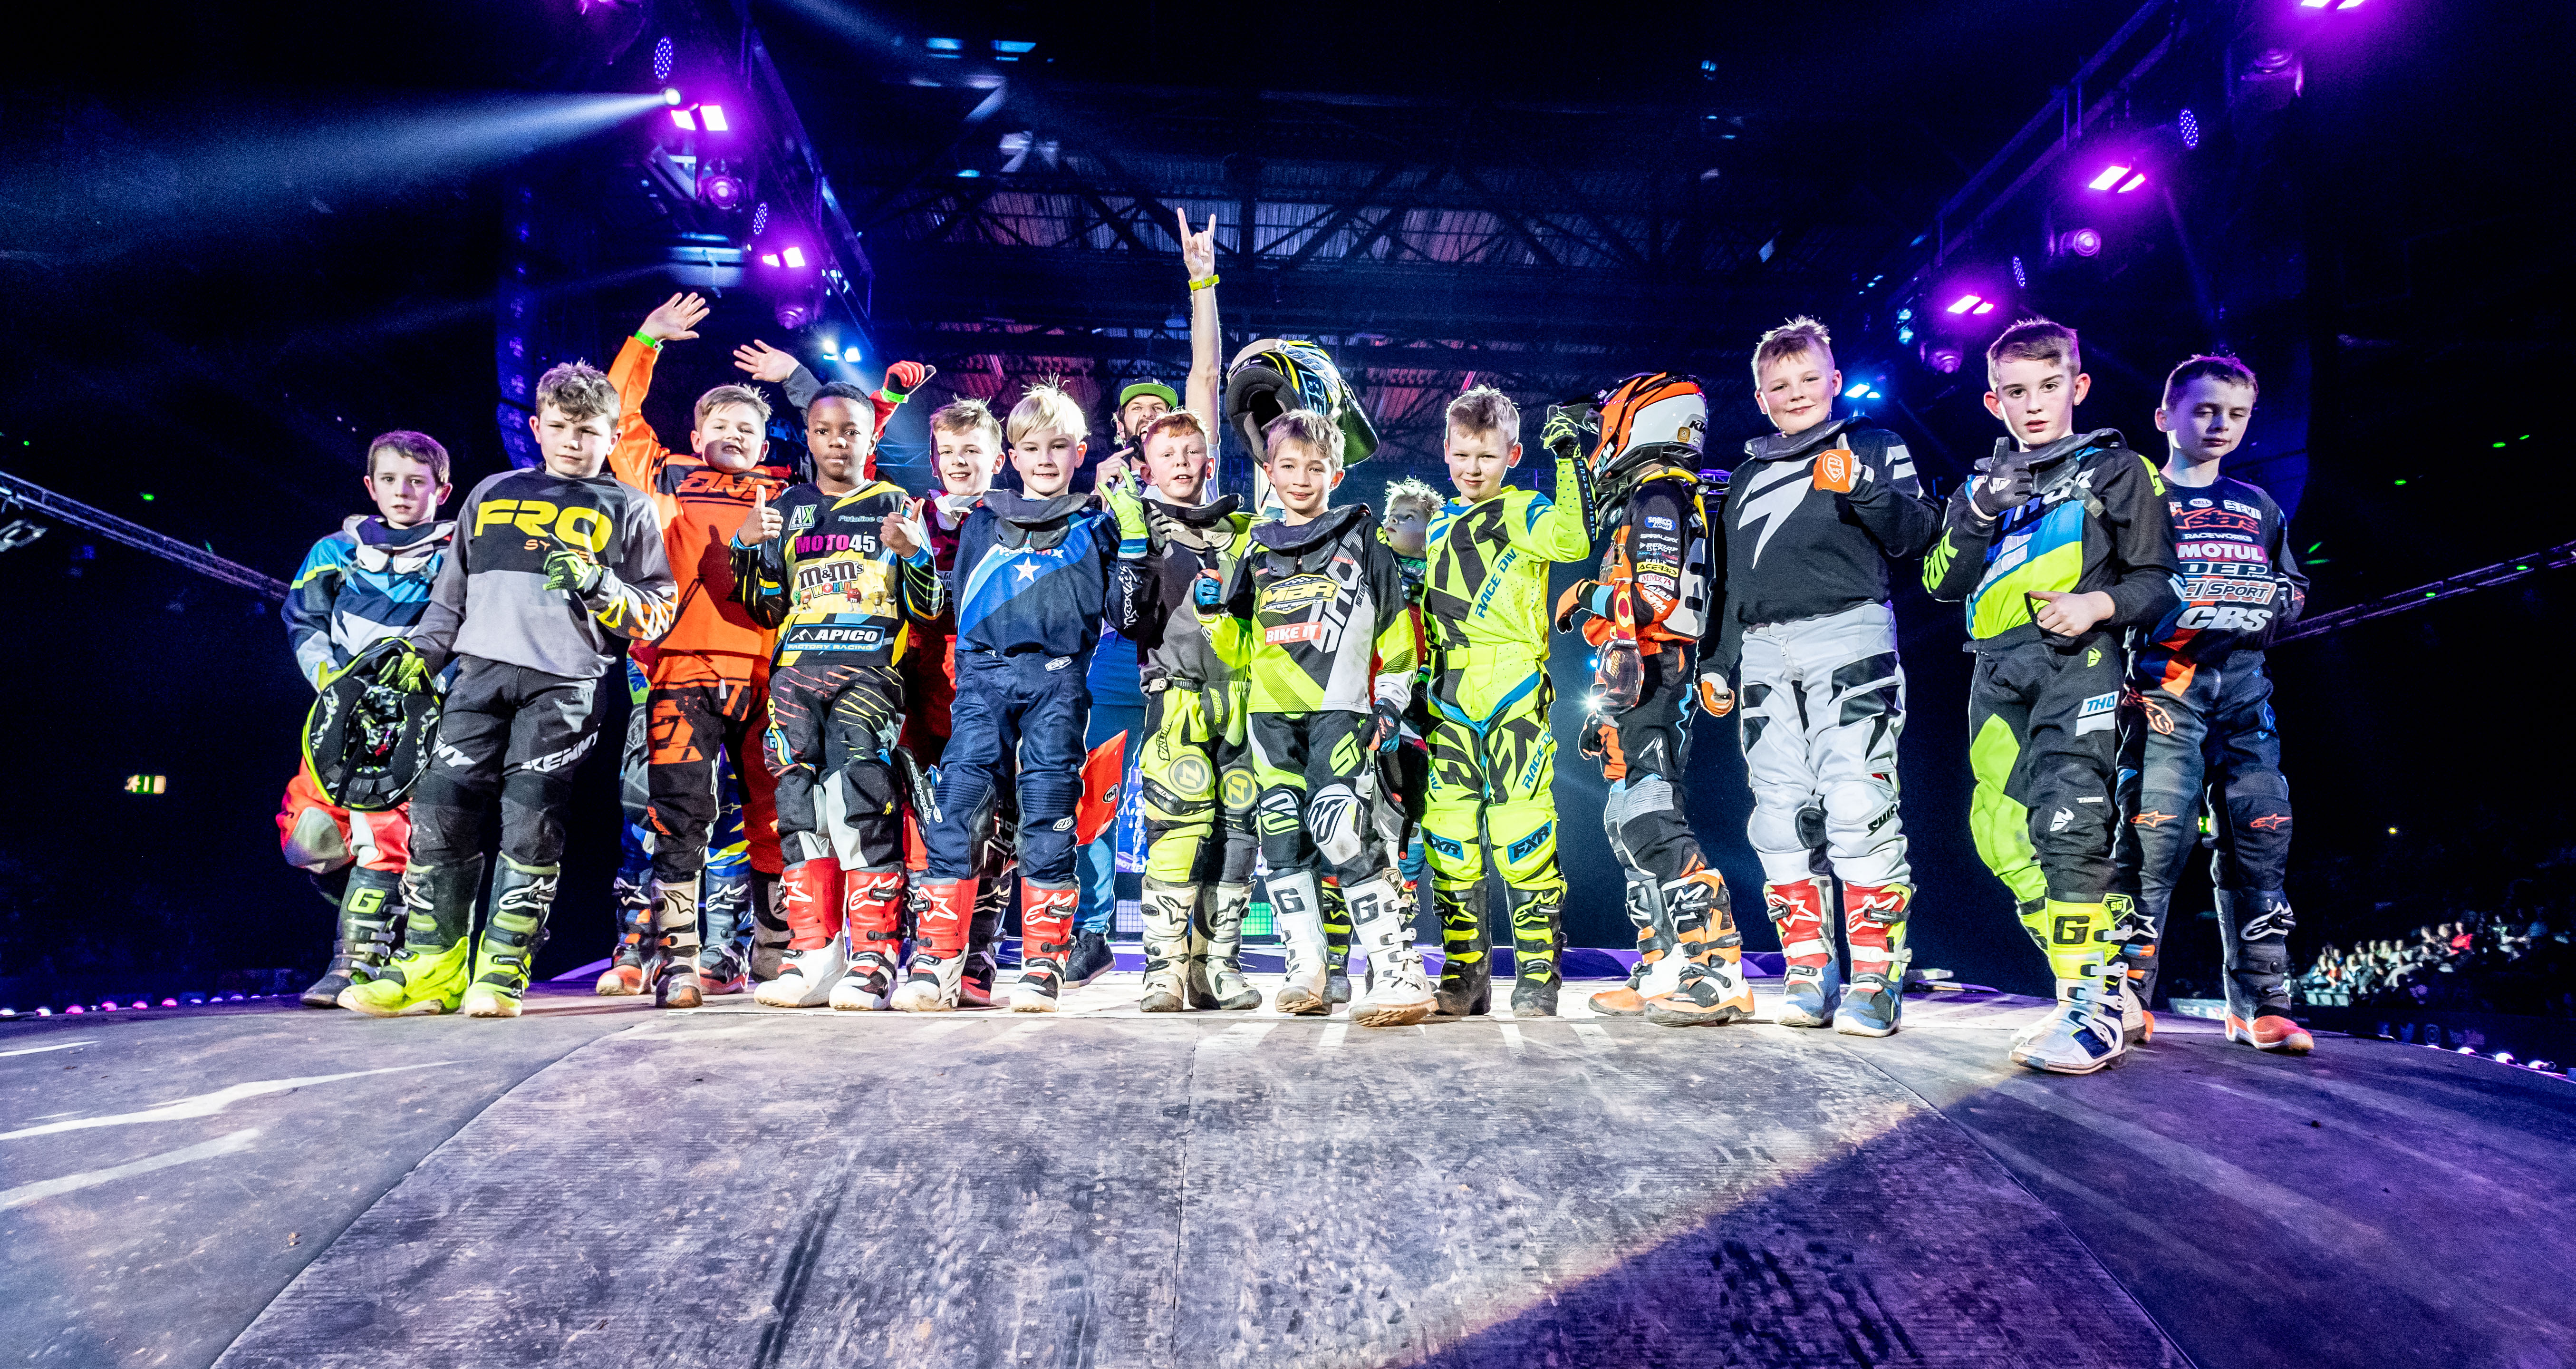 ARENACROSS YOUTHS HIT HALF WAY POINT AT BIRMINGHAM